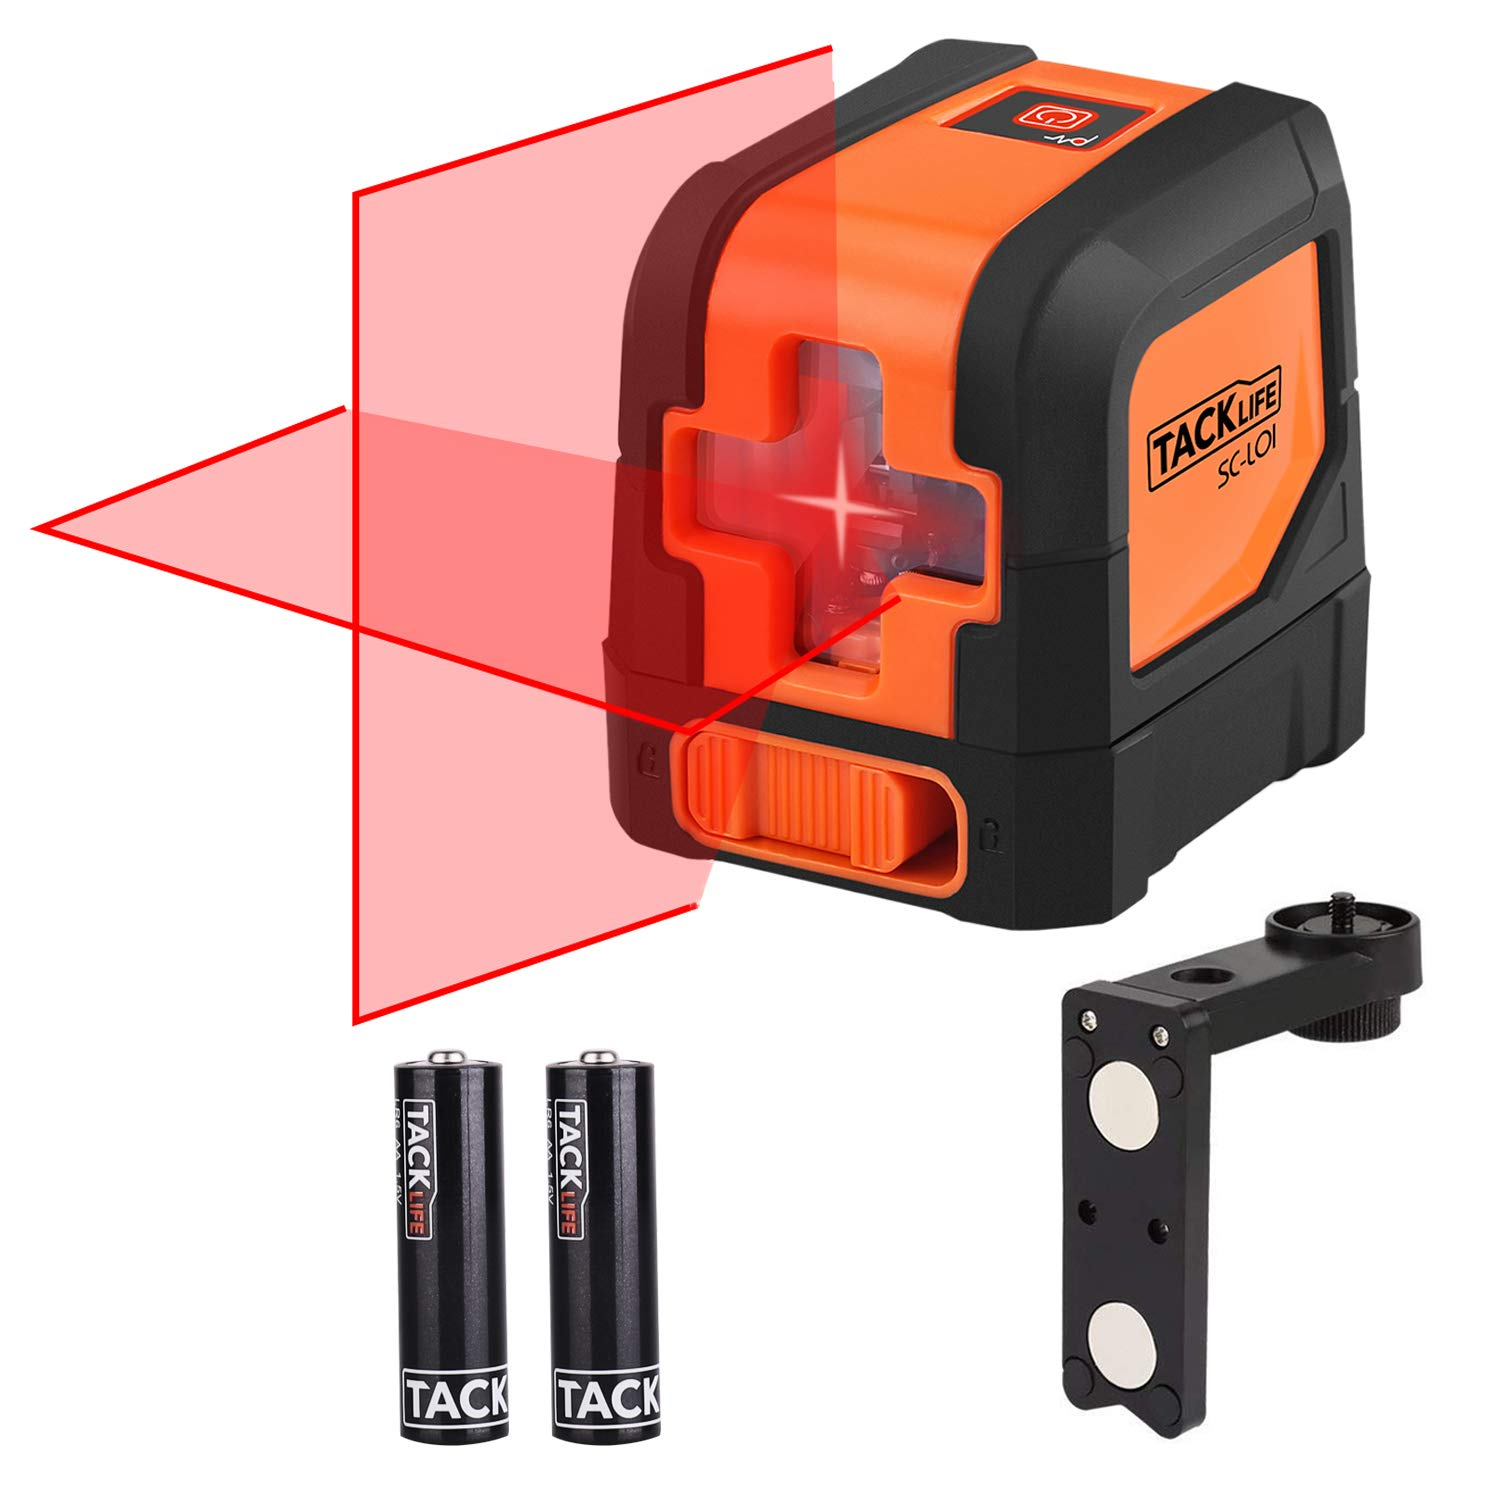 Tacklife SC-L01-50 Feet Laser Level Self-Leveling Horizontal and Vertical Cross-Line Laser - Magnetic Mount Base and Carrying Pouch, Battery Included by TACKLIFE (Image #1)